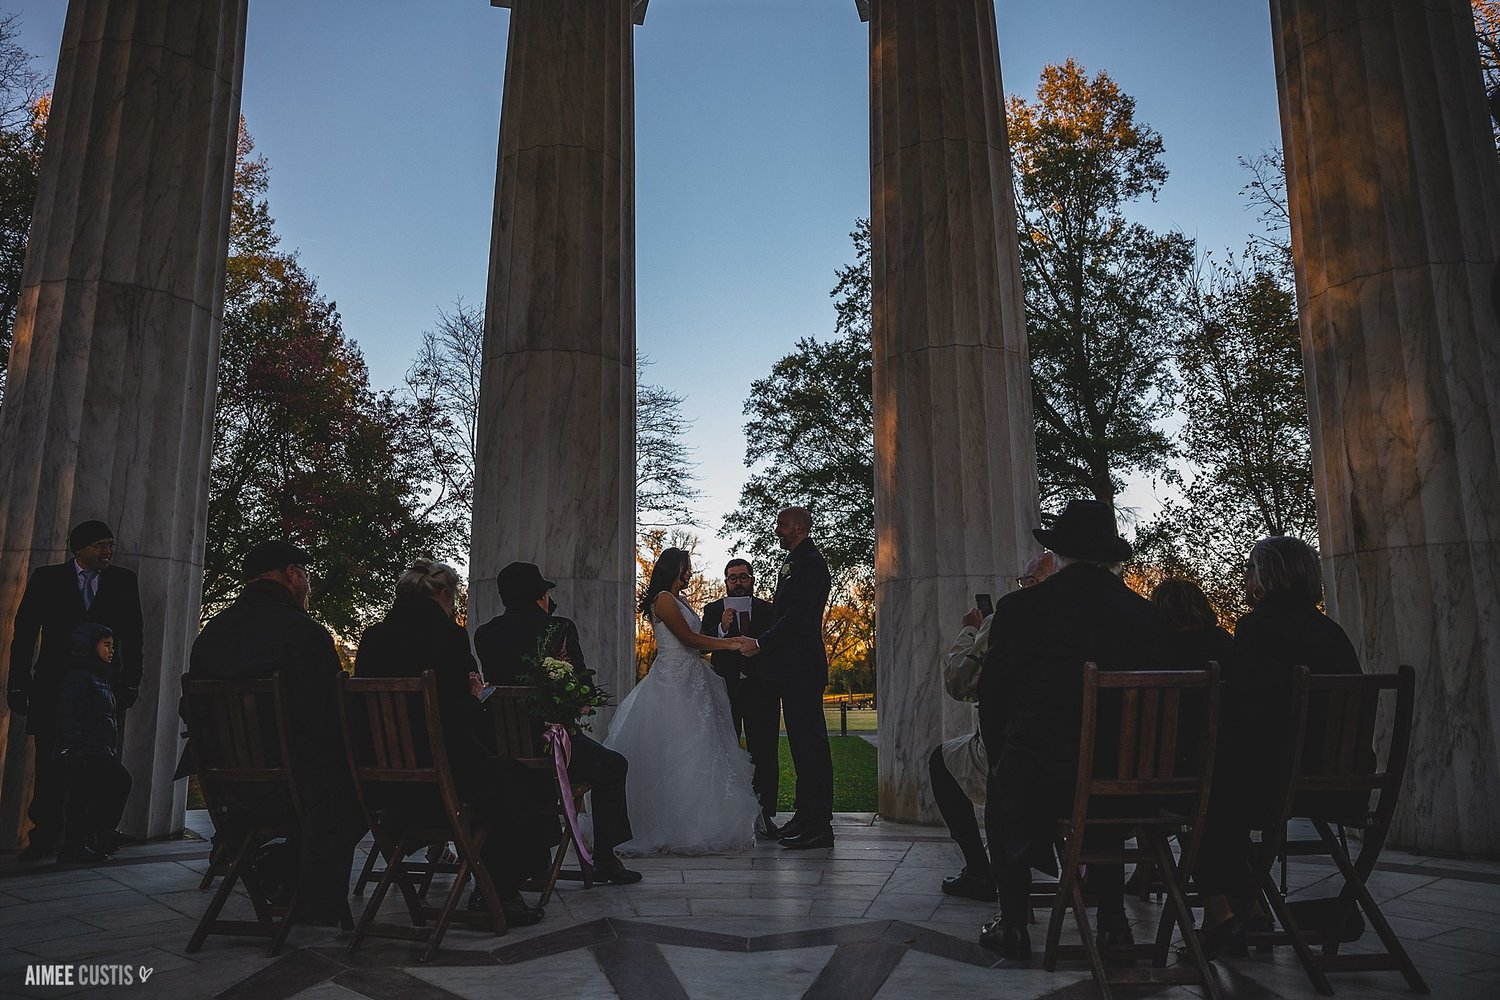 Oh, and their ceremony? Picture-perfect right at sunset. 👌🏻